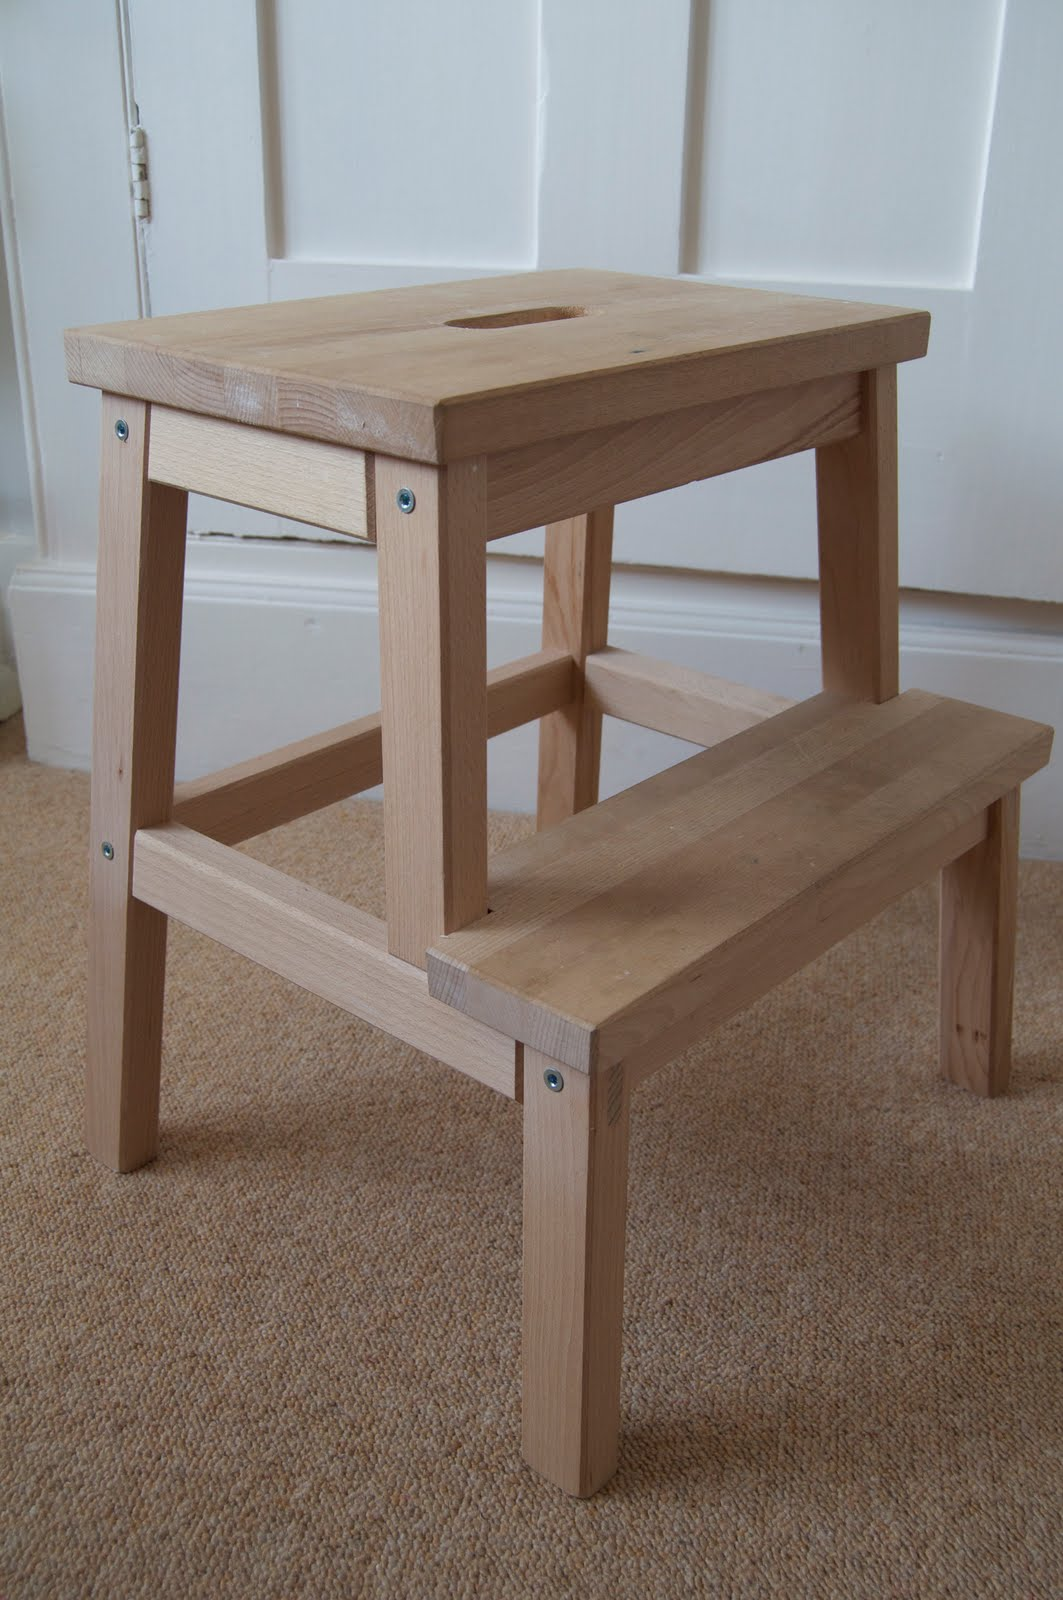 Stool For Bedroom Bedroom Step Stool Bedroom Gray Open Cloth Storage Also Cushion